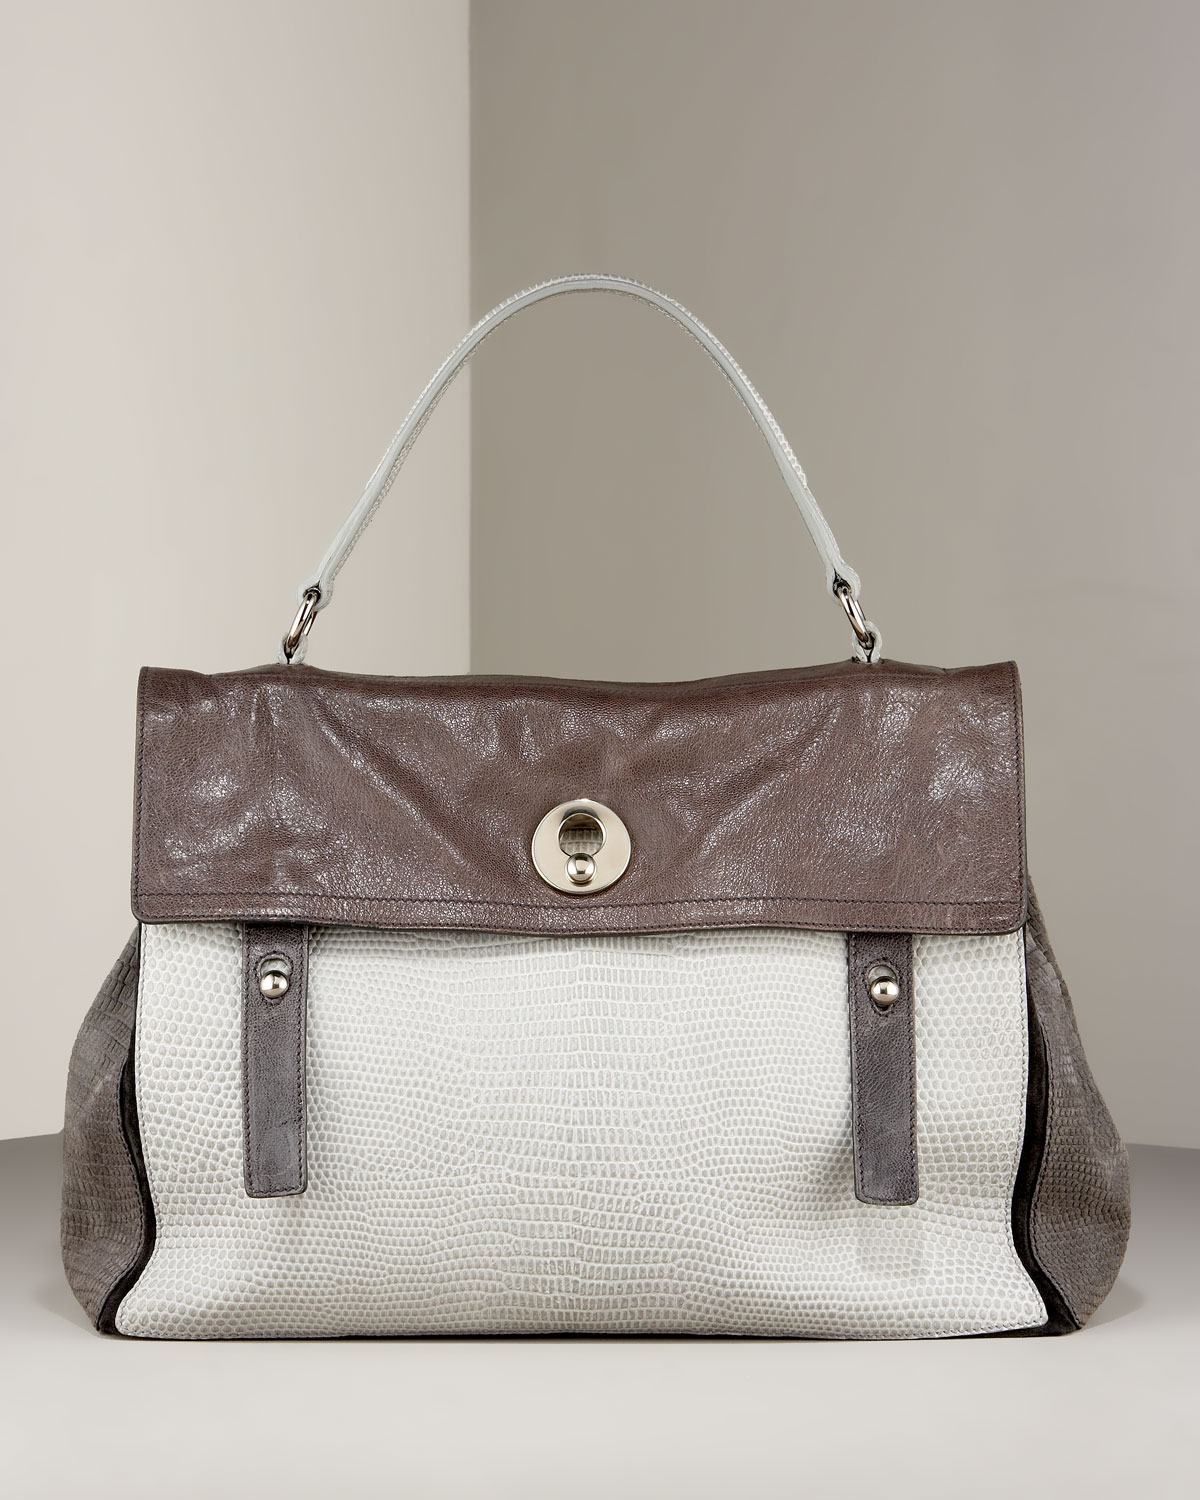 Muse Two-Flap Shoulder Bag - Yves Saint Laurent - Bergdorf Goodman from bergdorfgoodman.com